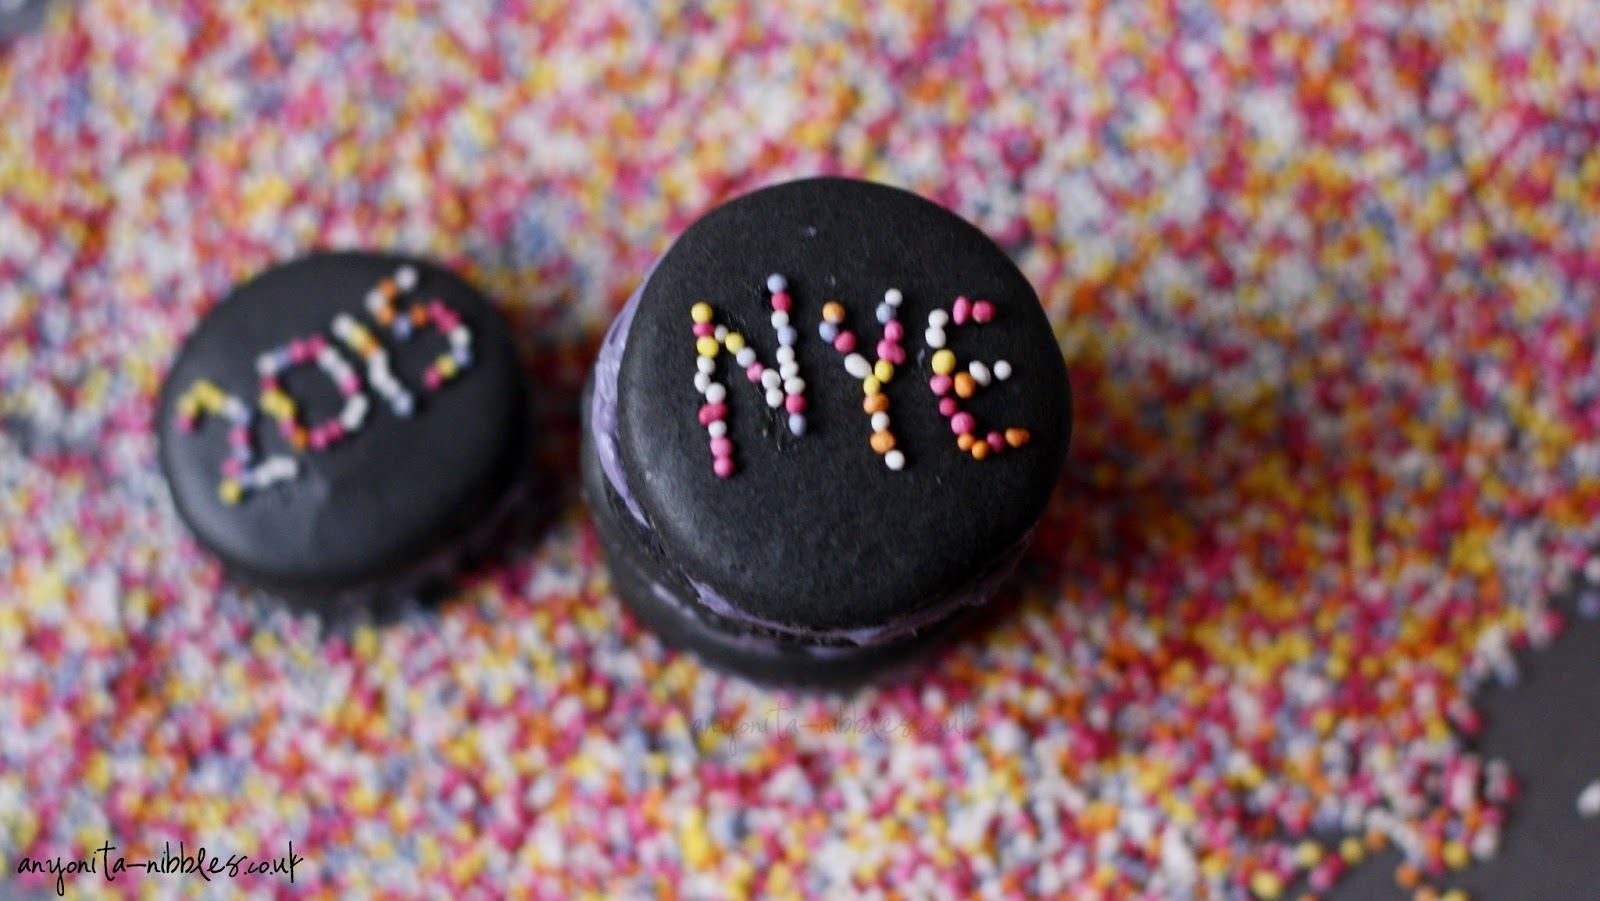 Happy New Year's Eve from Anyonita-nibbles.co.uk